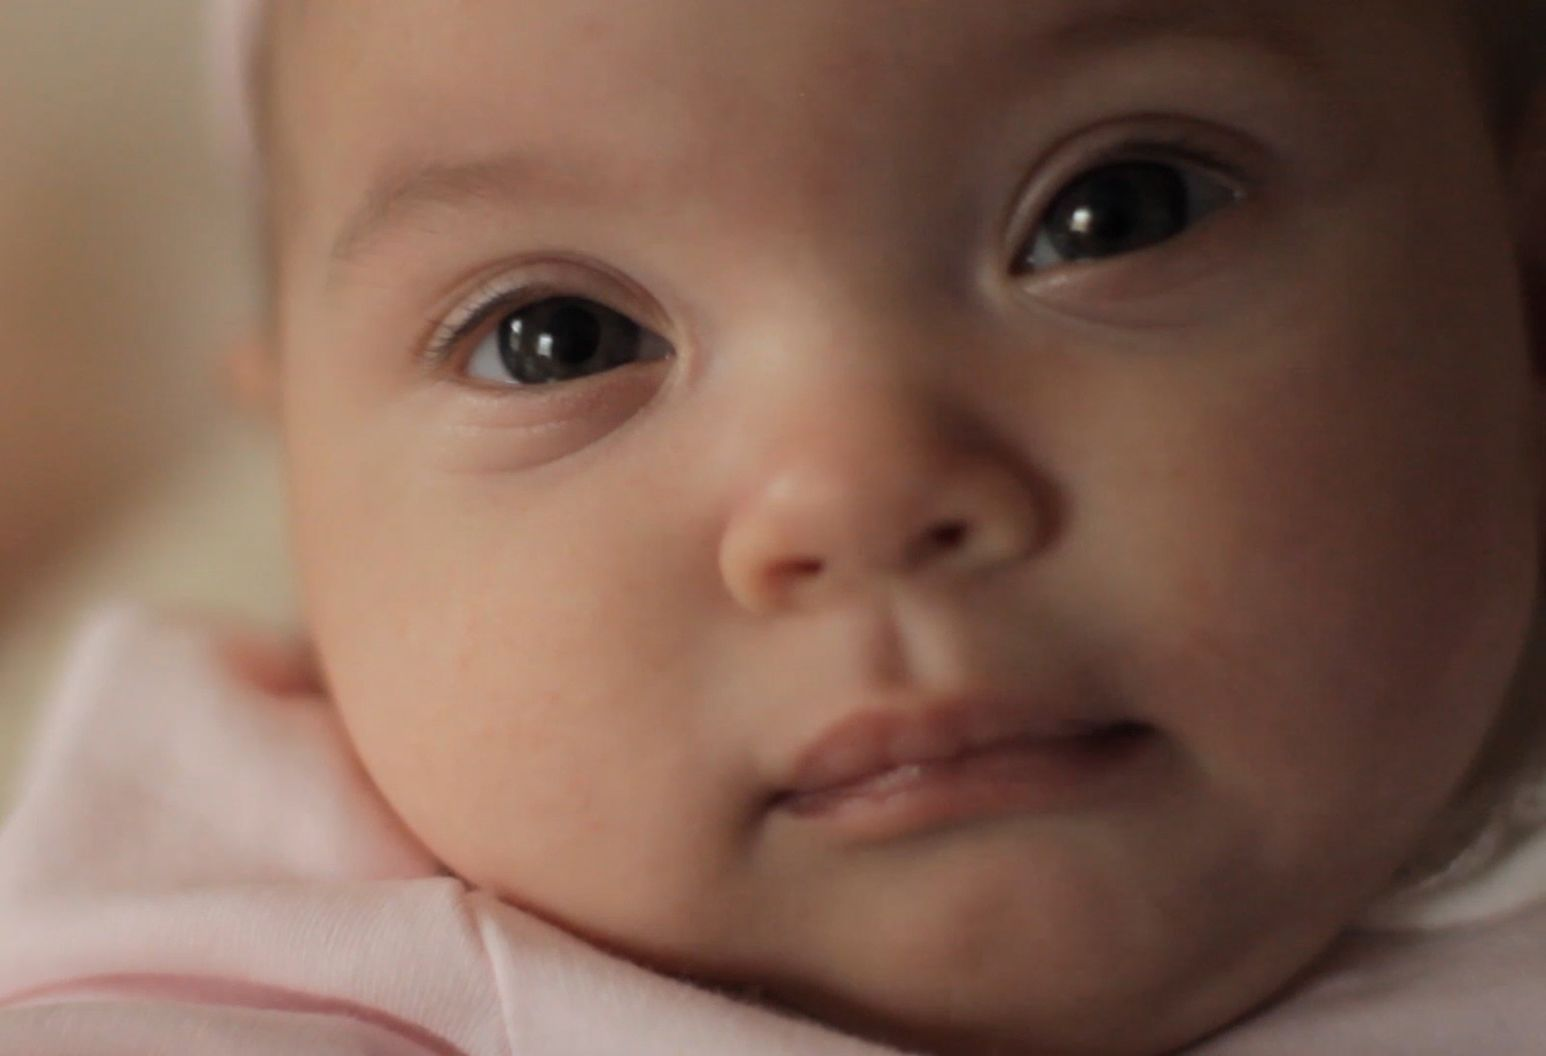 Close up picture of a baby's face